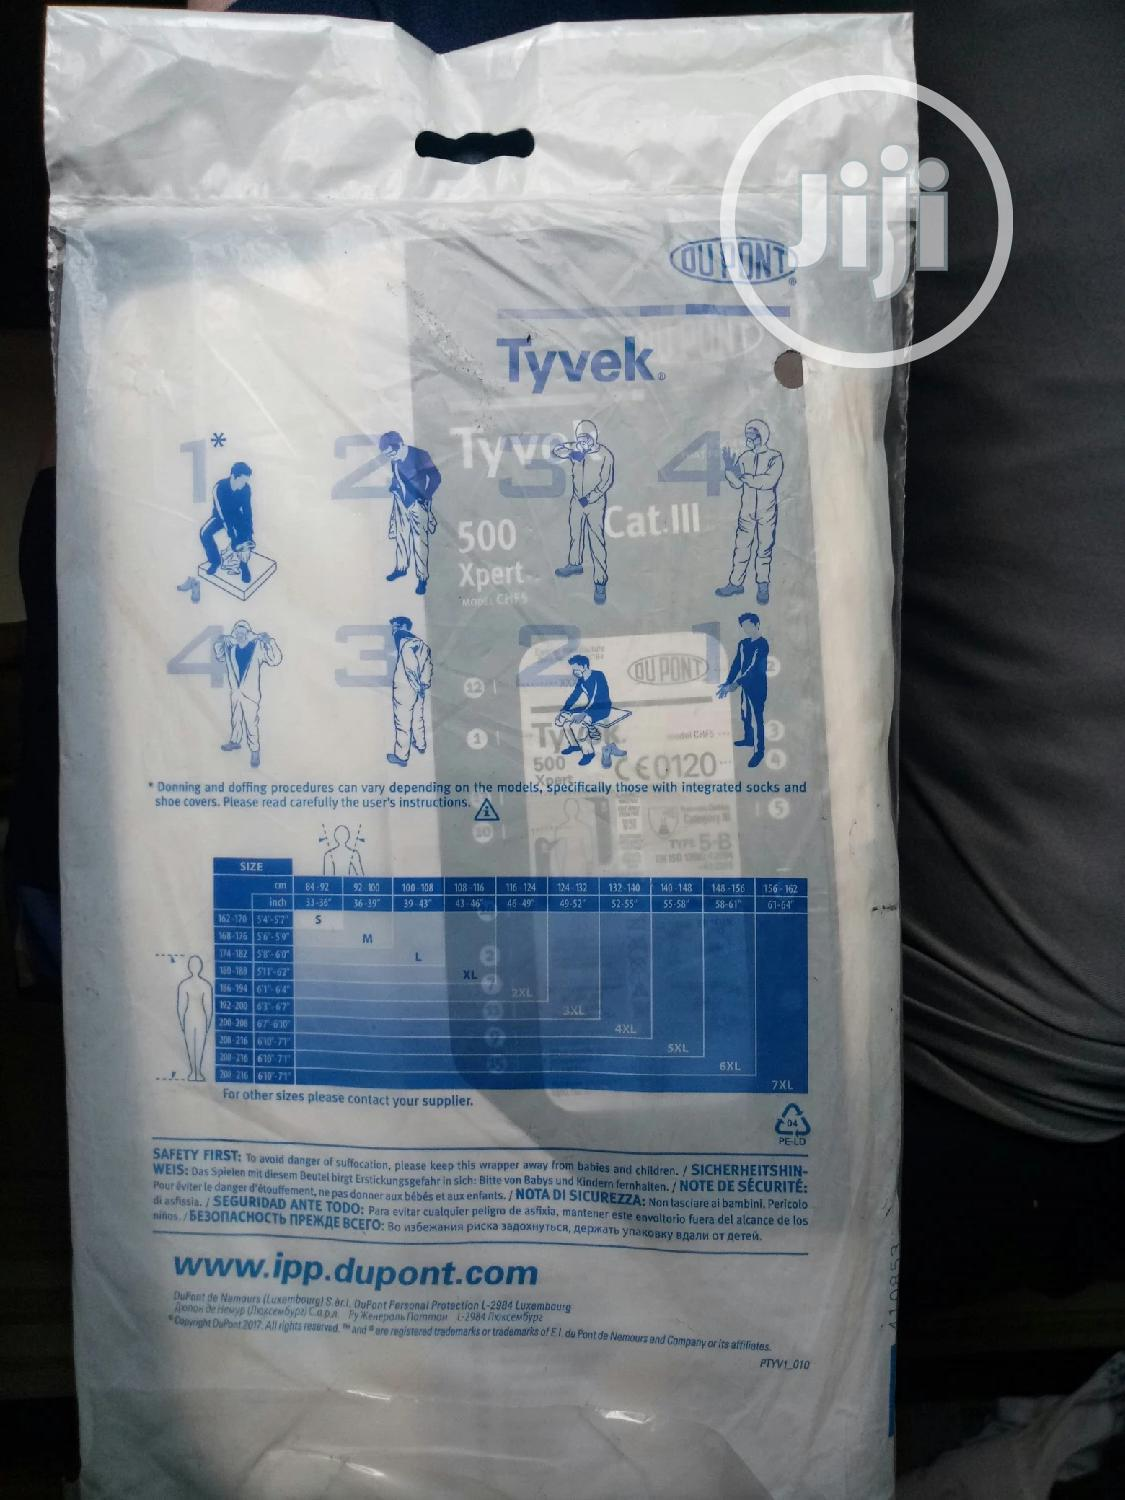 Tyvek Reusable Surgical Coverall